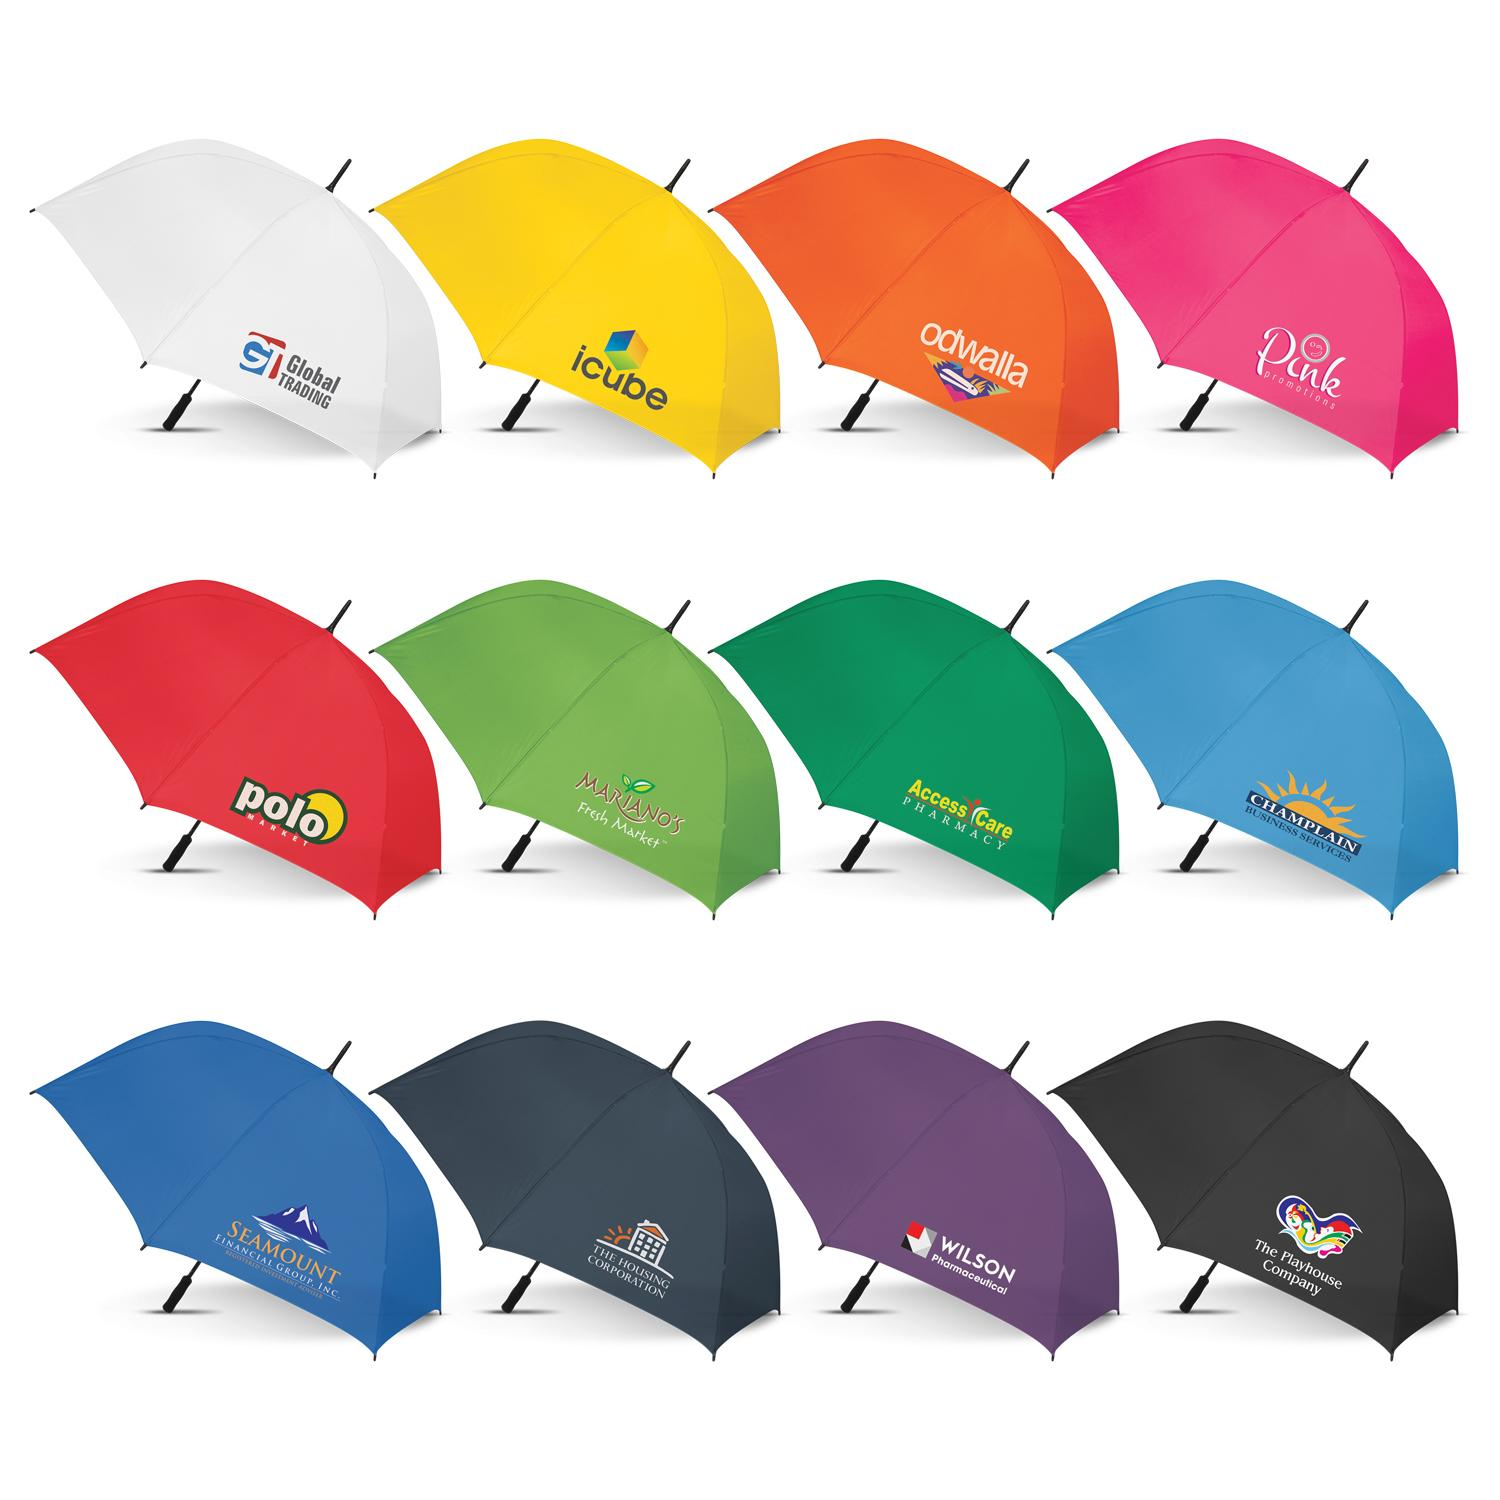 View our great range of promo products